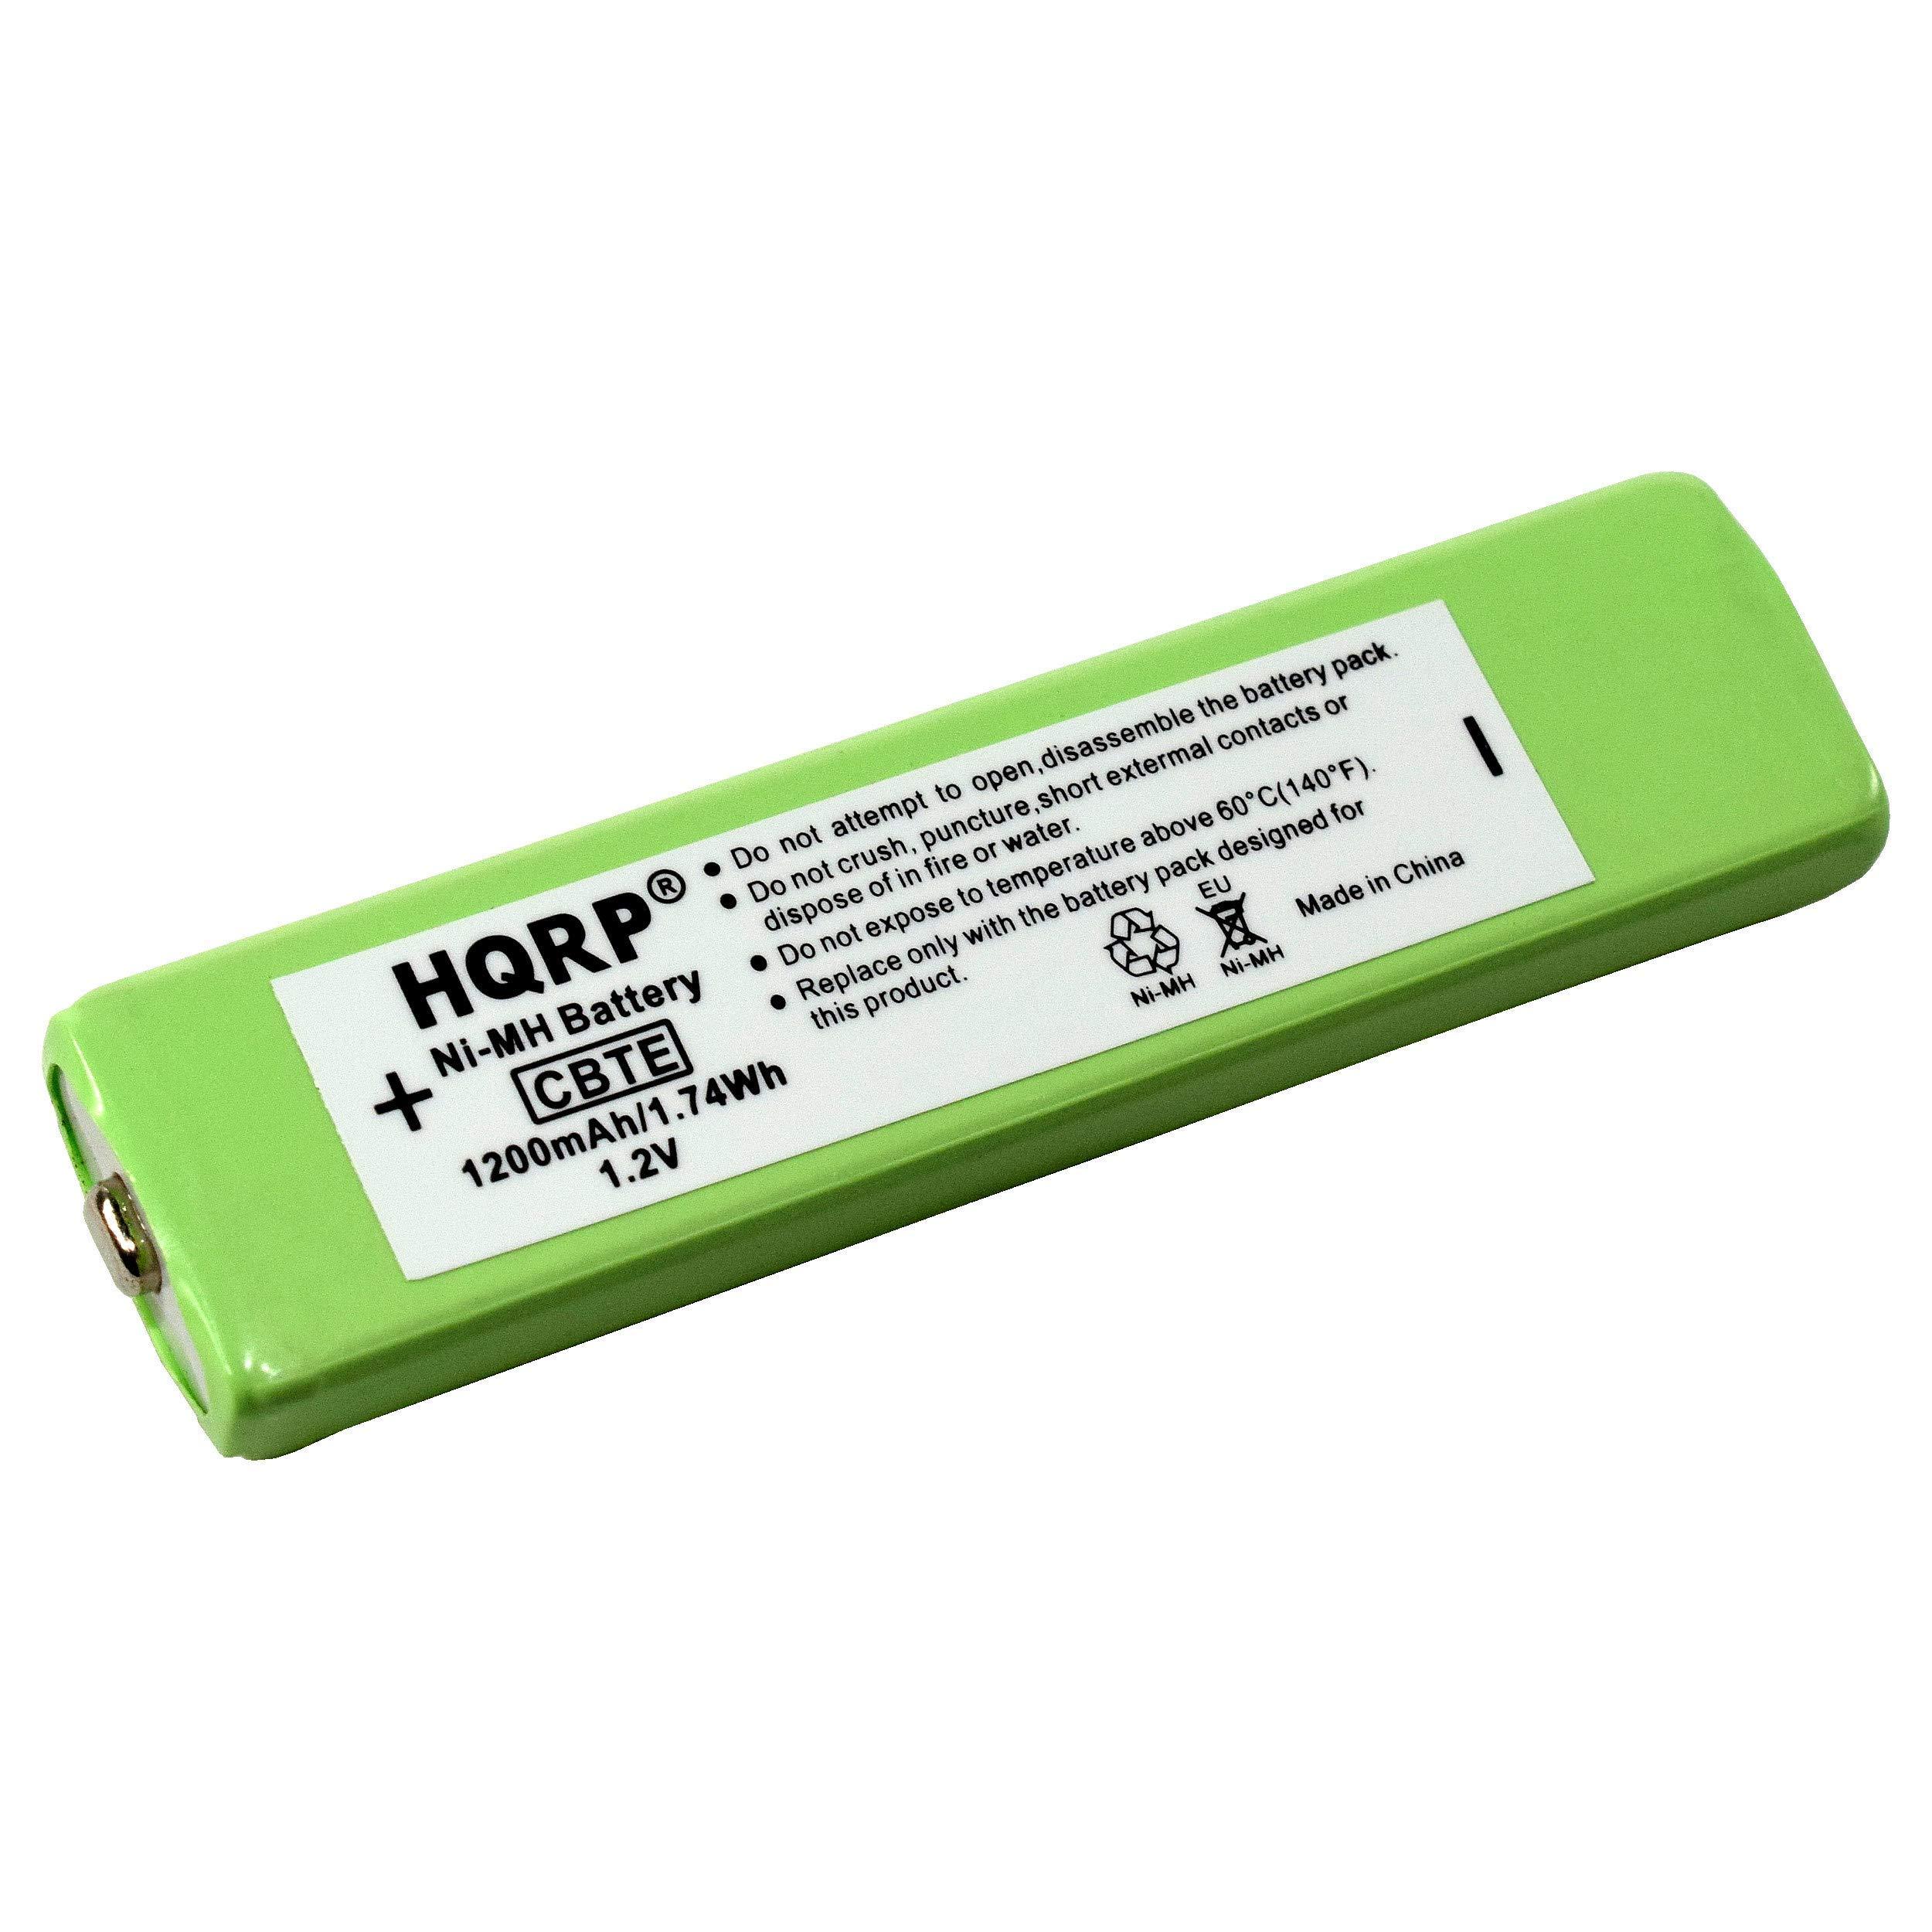 HQRP Portable CD/MD / MP3 Gumstick Battery Compatible with Sony NH-14WM / NH14WM / NH-14WM(A) WM-EX921 WM-609 Replacement